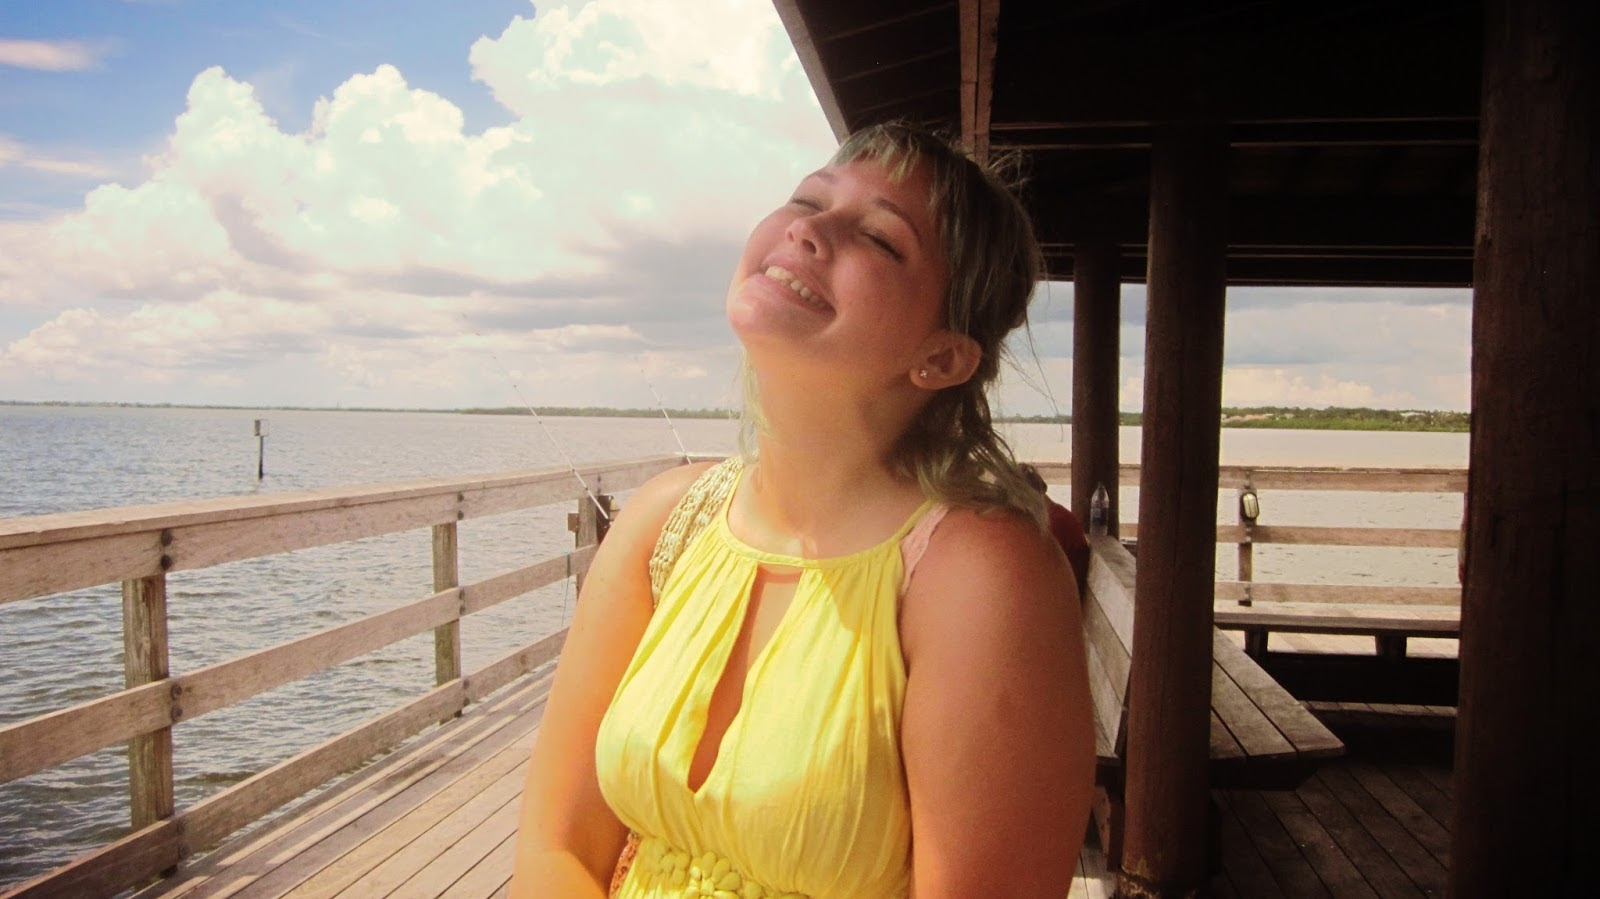 Cute Blue-Haired Girl Smiling on the Docks of Tampa Bay in Safety Harbor, Florida in a Yellow Dress